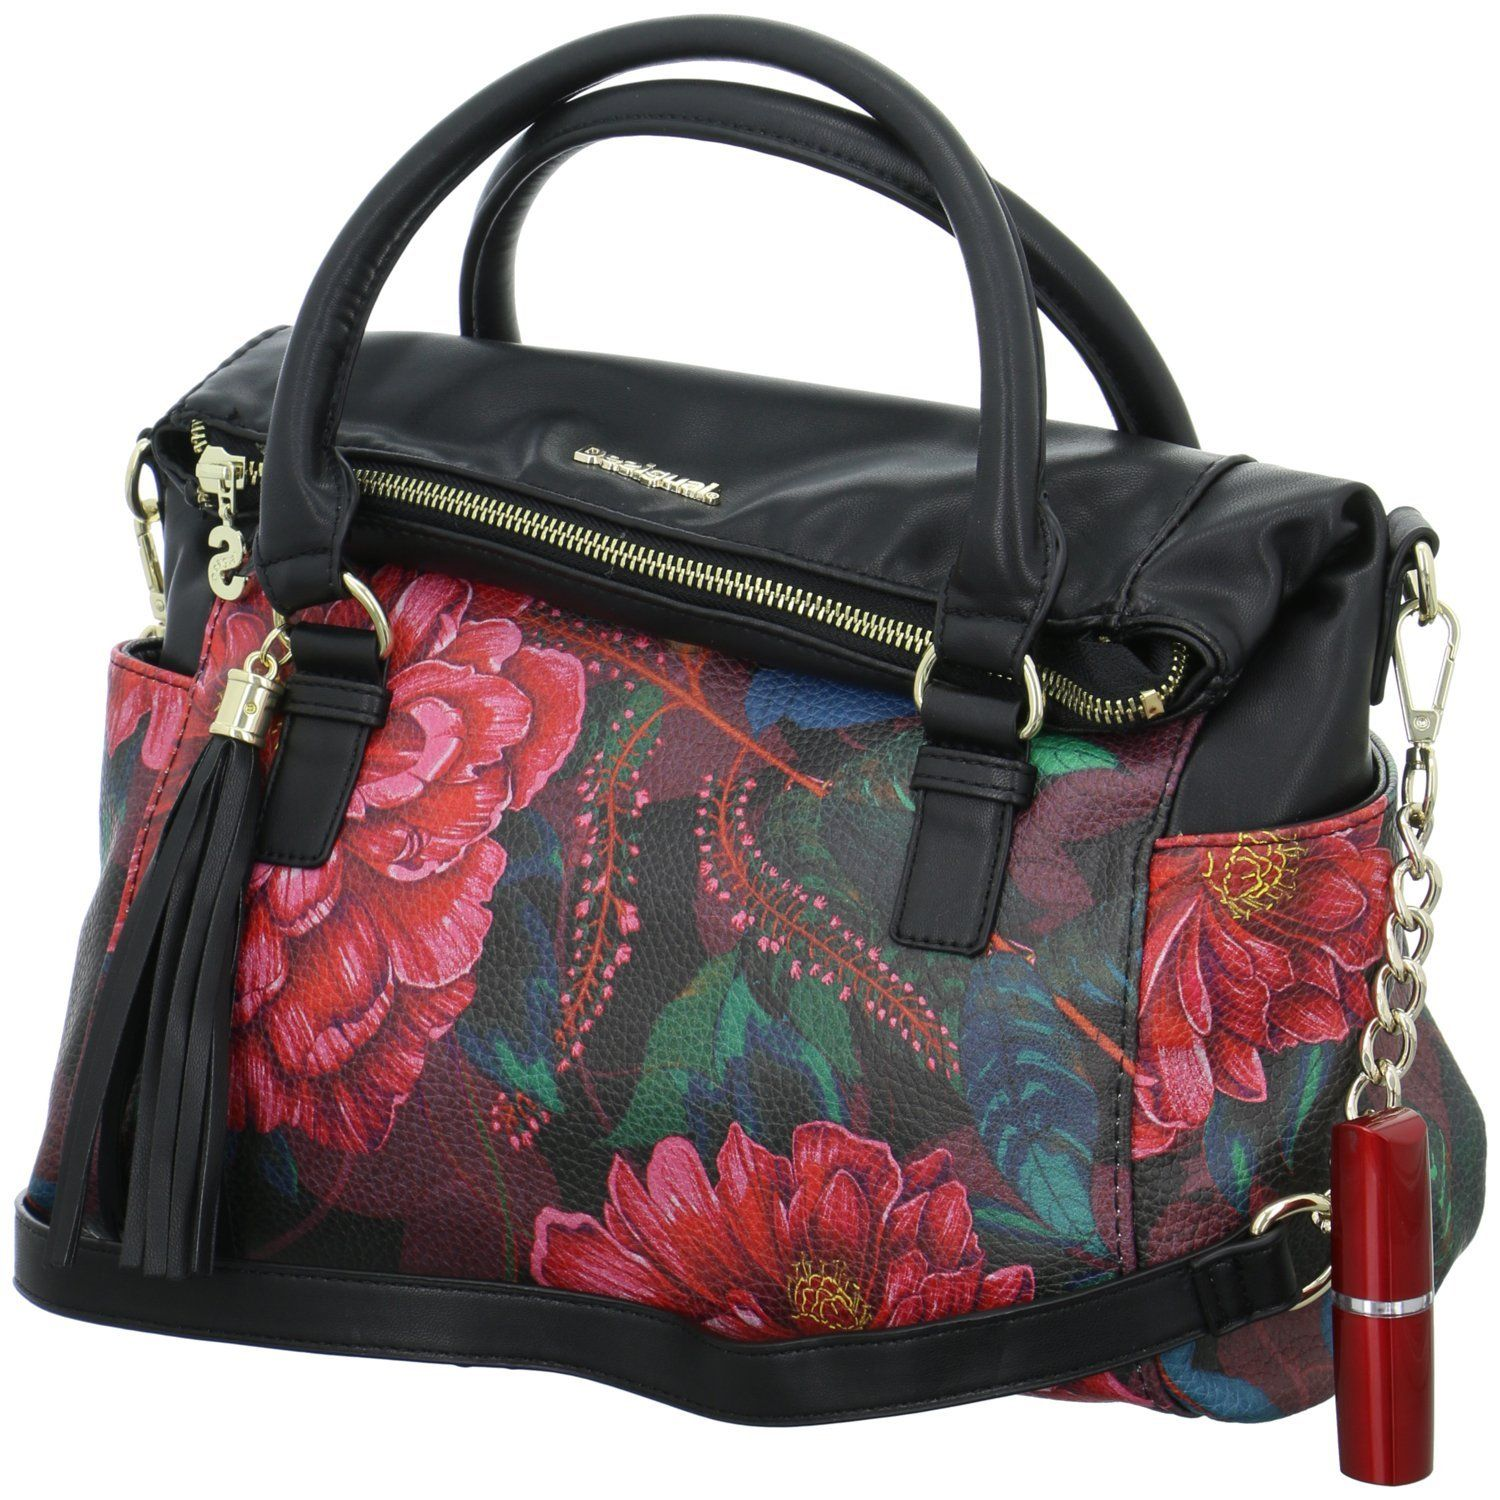 Zapatos Desigual Paris Loverty BOLS Amazon de es mano Bolso cm 33 w6qwBr1vn